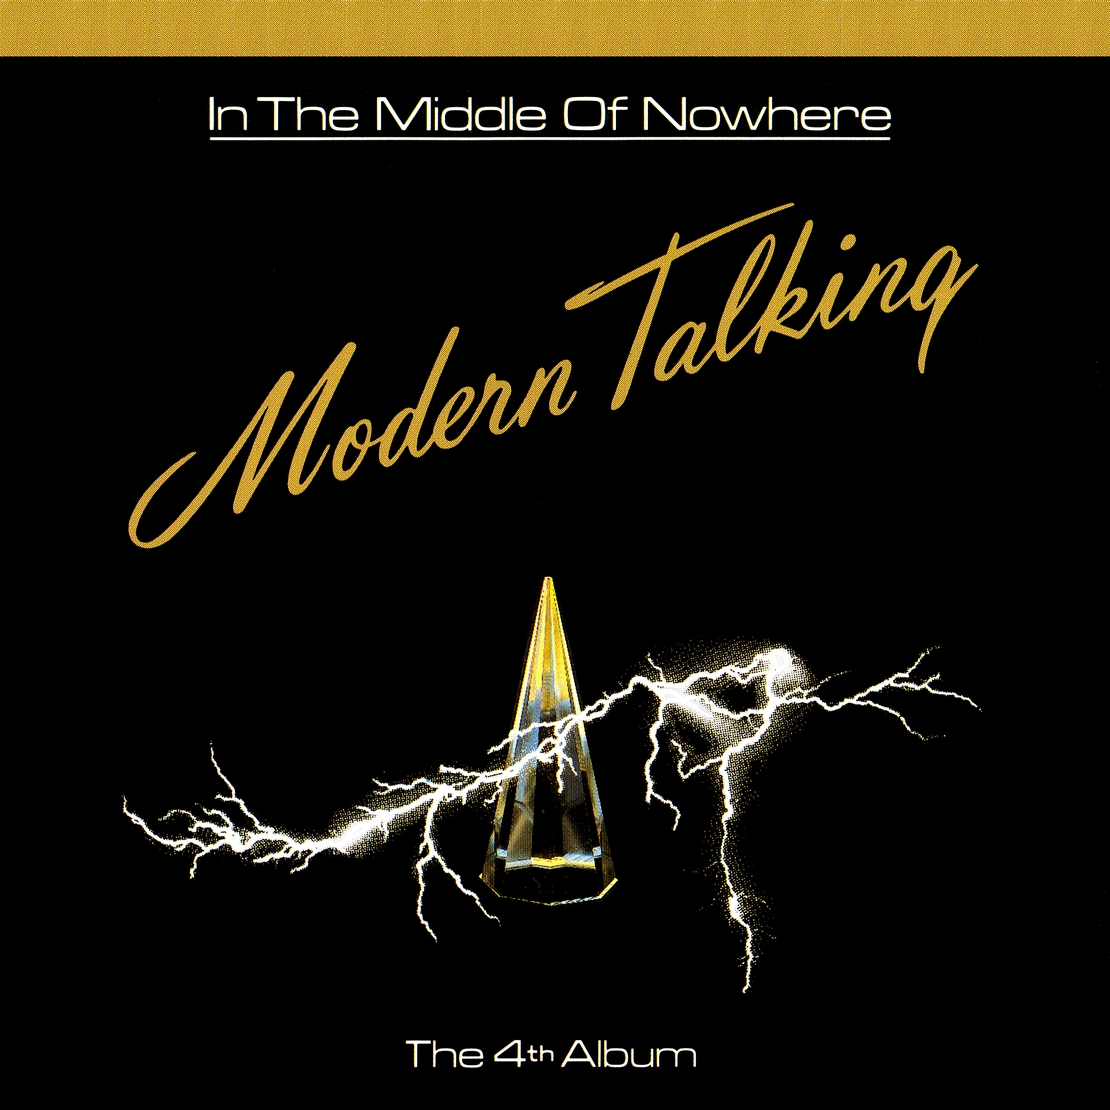 Tiedosto modern talking in the middle of nowhere